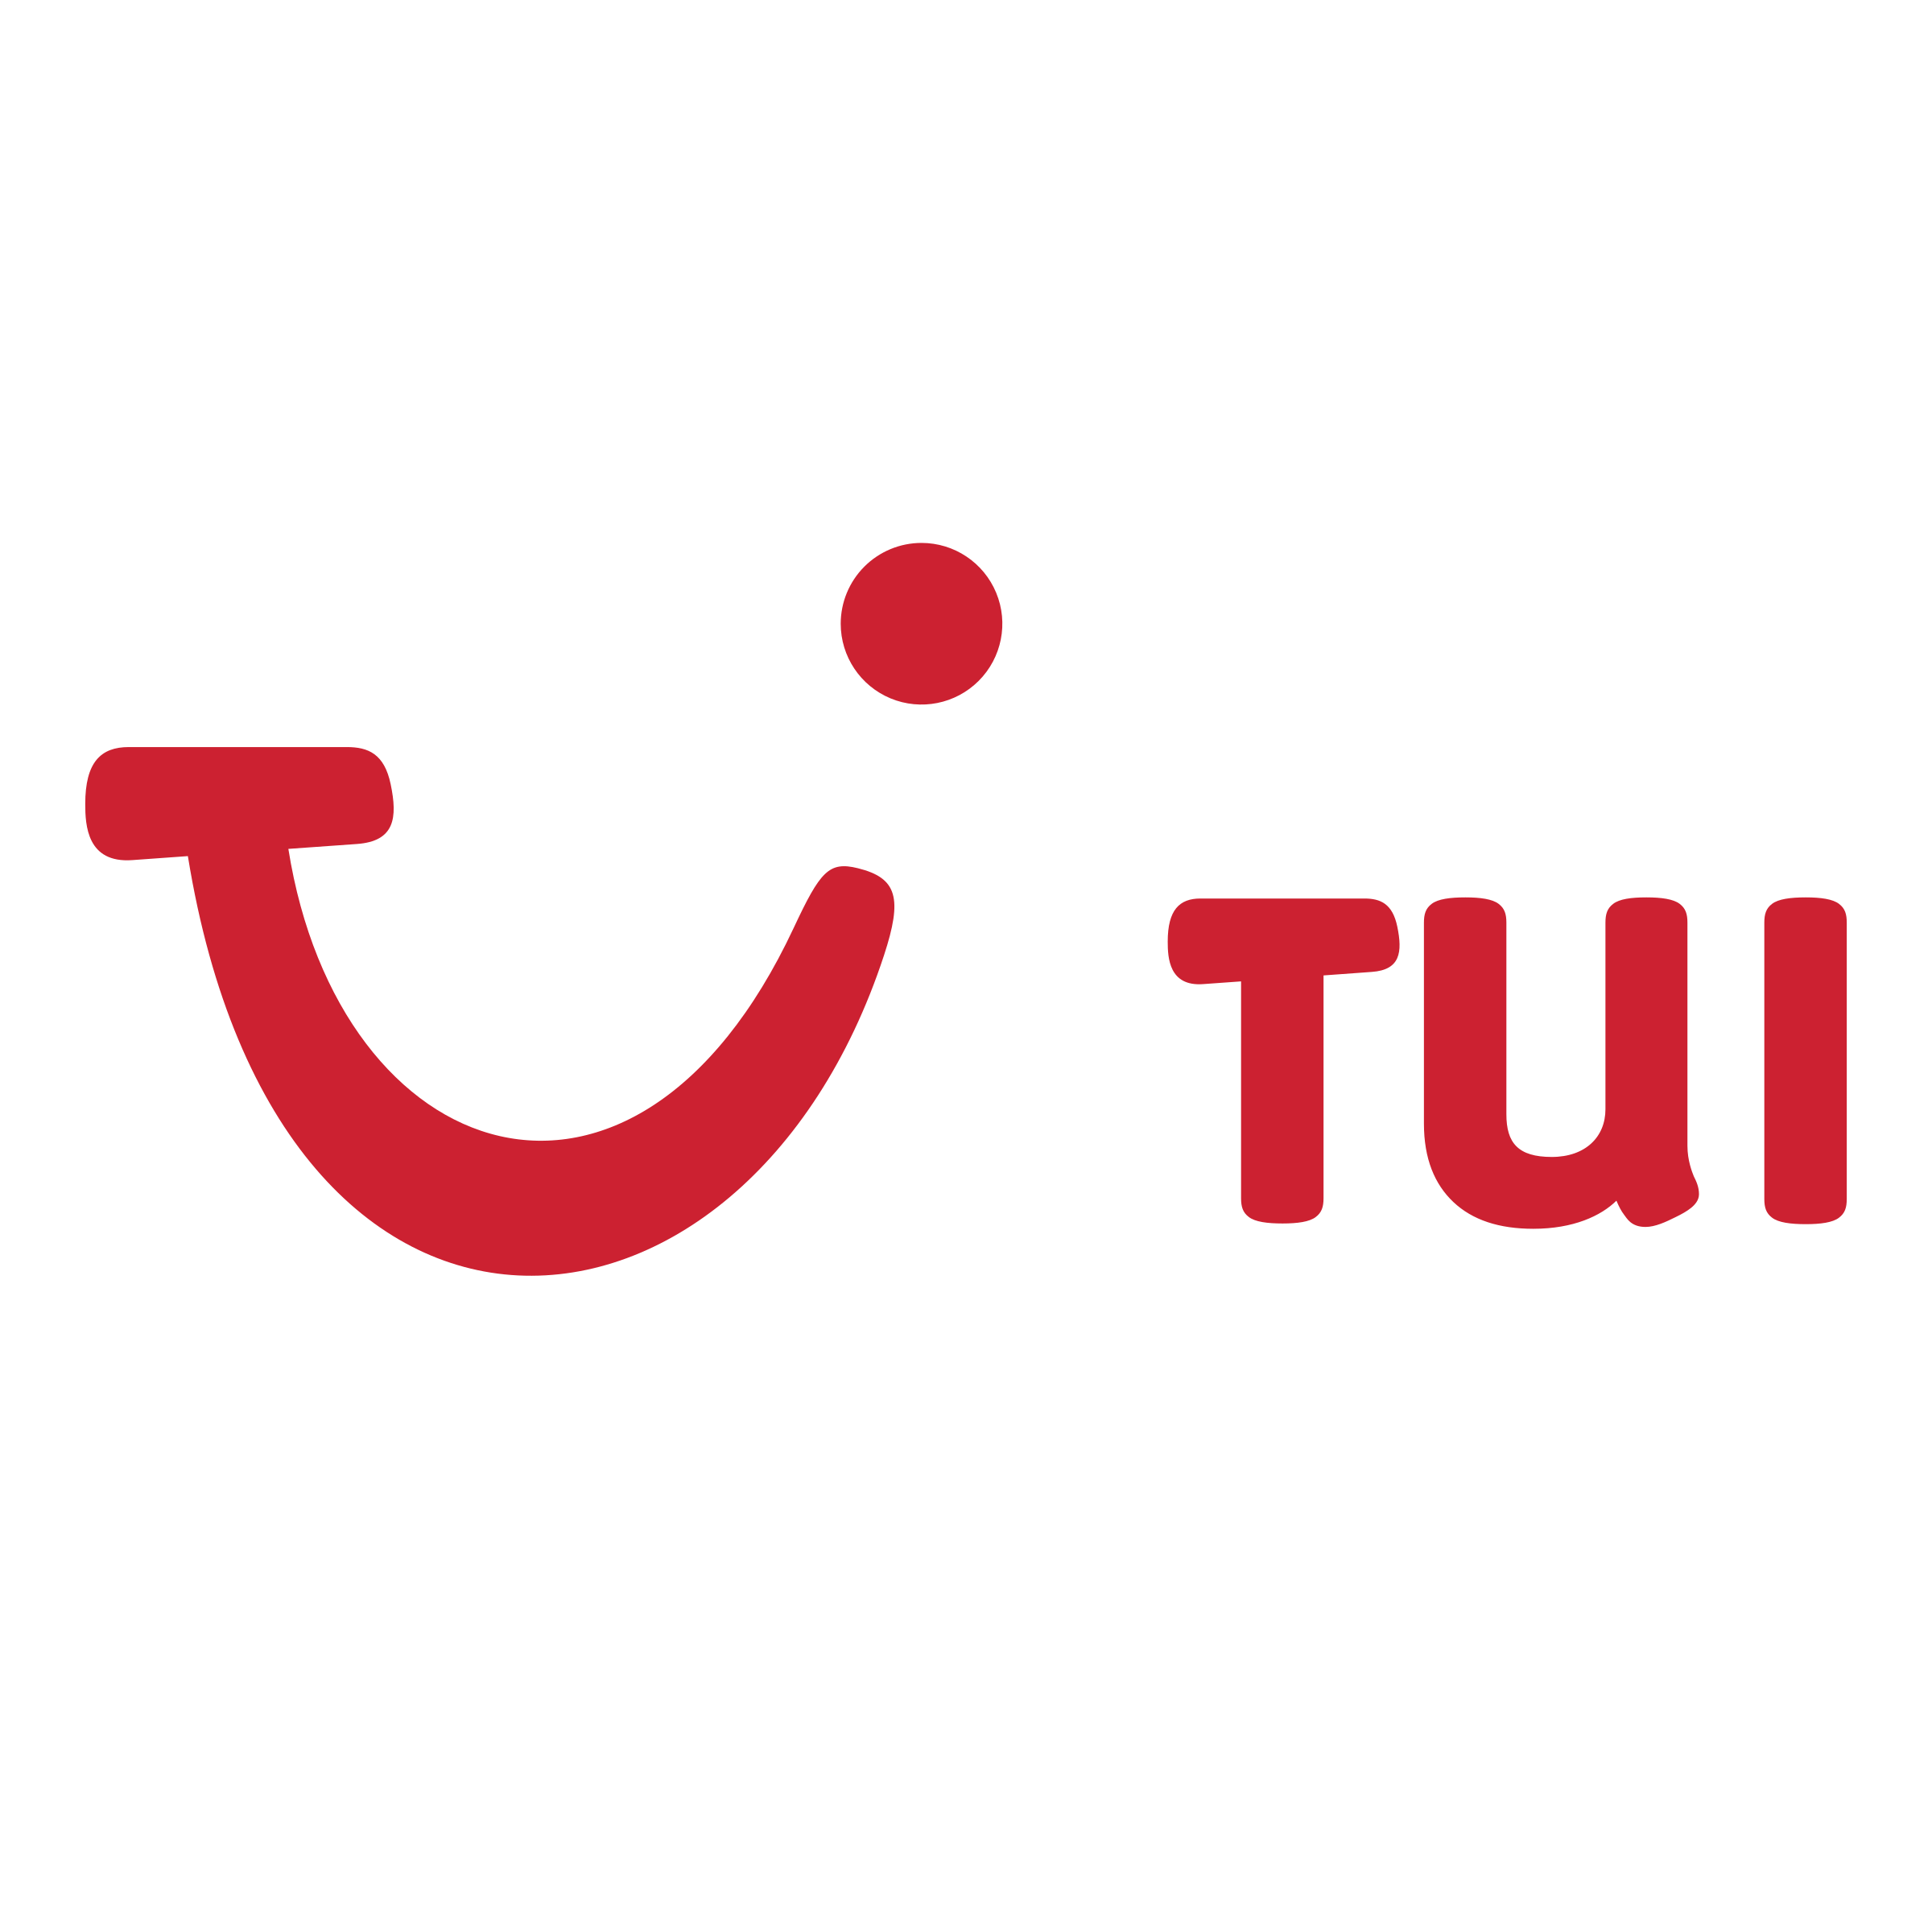 TUI Logo PNG Transparent & SVG Vector.